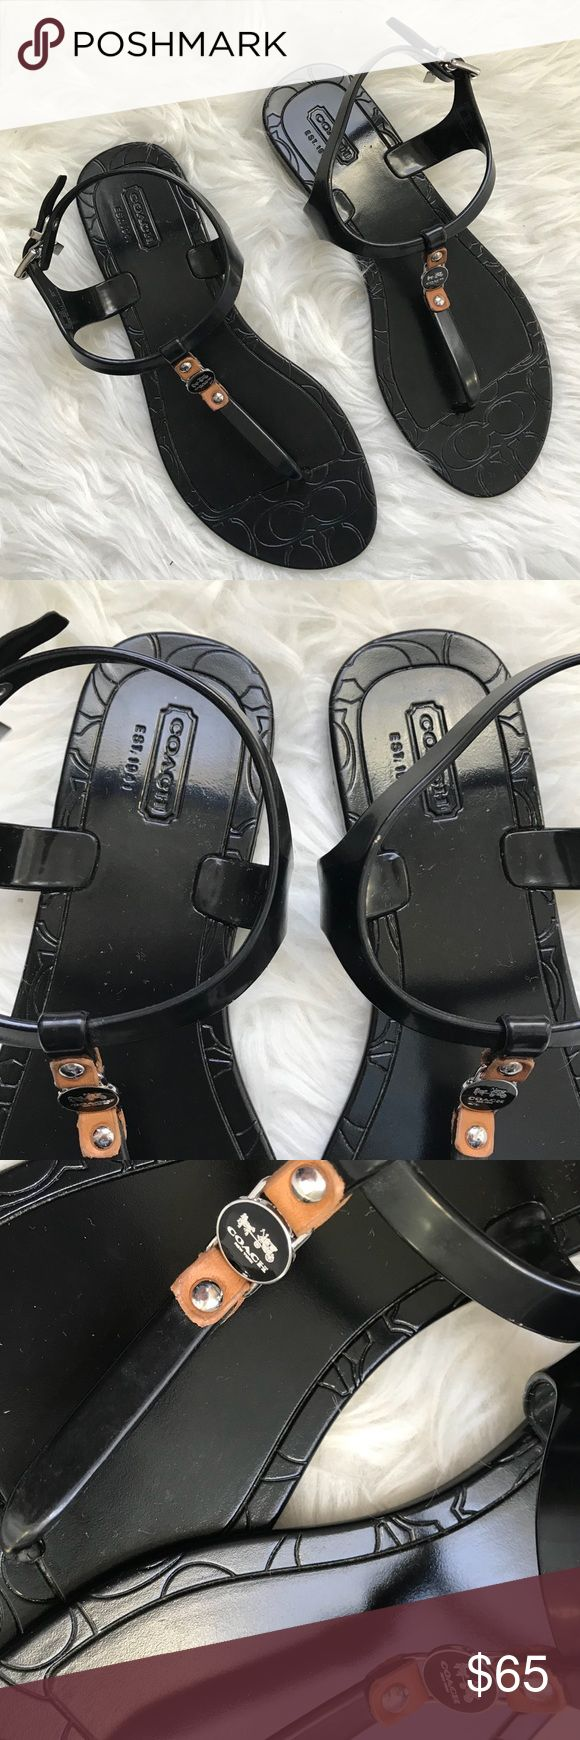 Coach Piccadilly Black Jelly T Strap Sandals Excellent used condition. No flaws. Minor wear to the bottoms. Perfect for summer! Coach Shoes Sandals